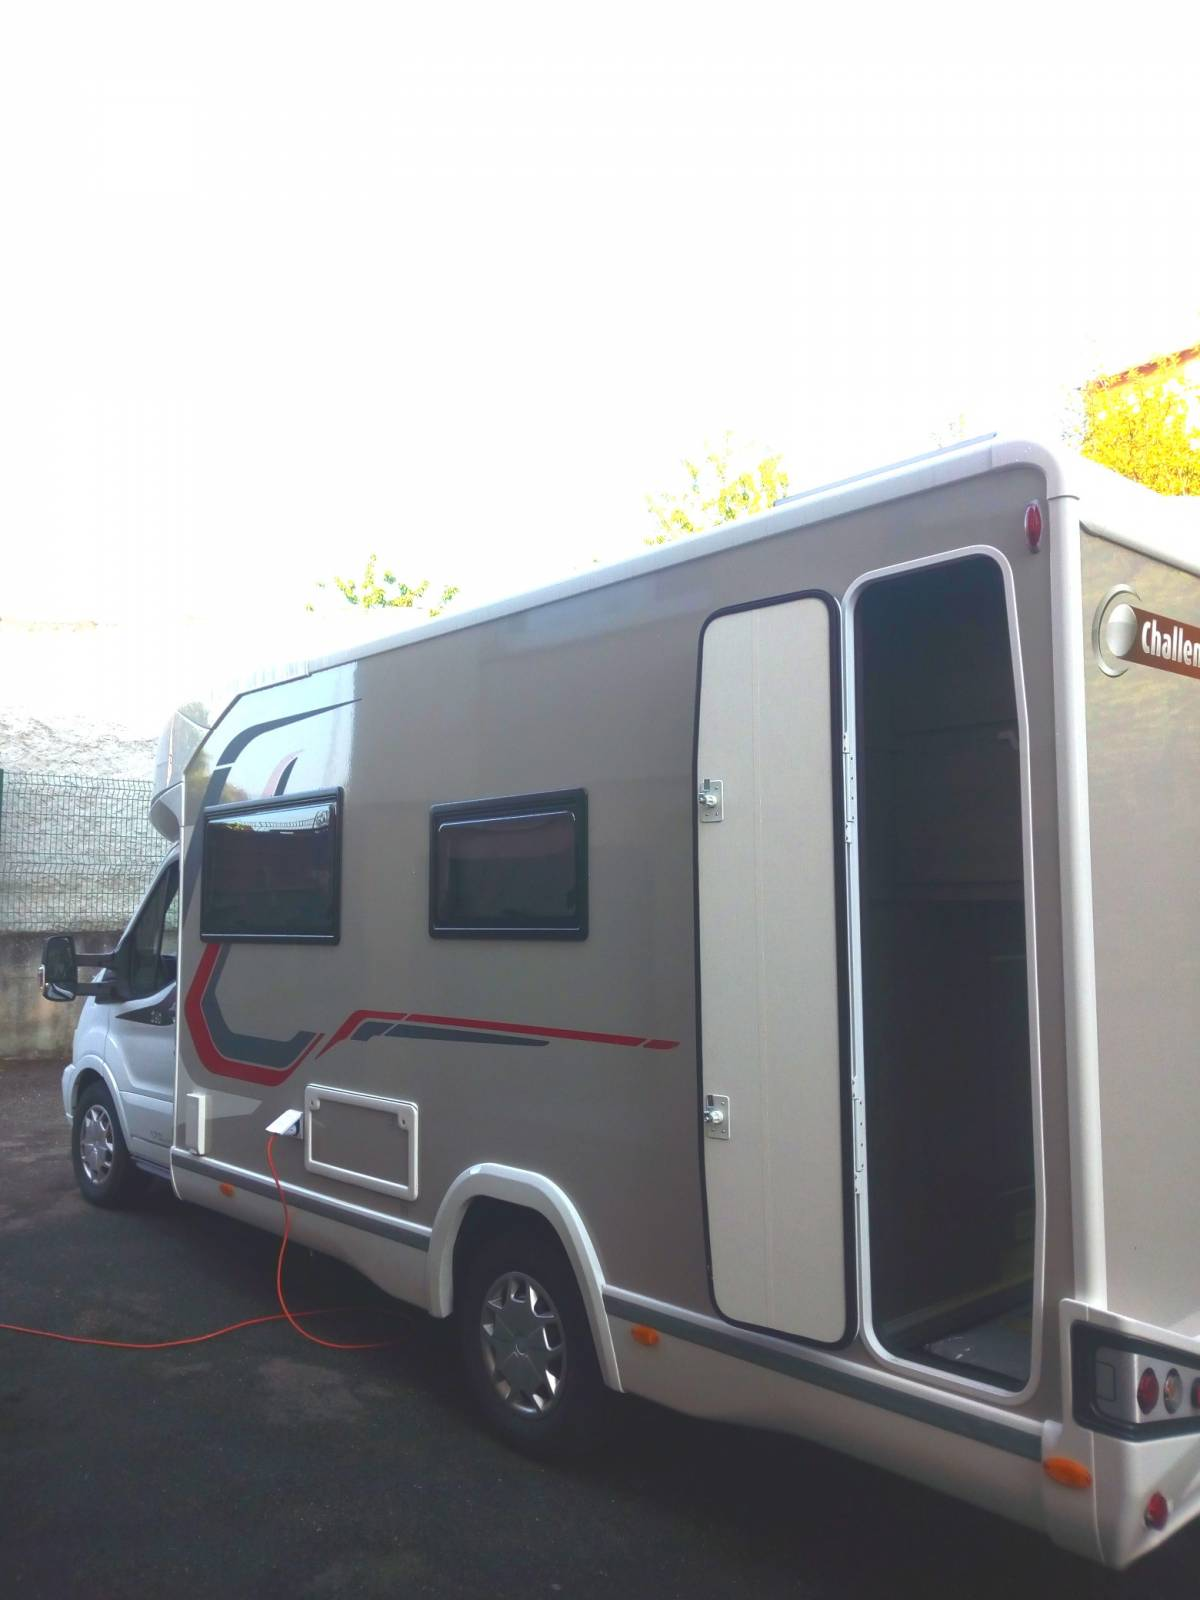 camping-car CHALLENGER 260 GRAPHITE EDITION BVA